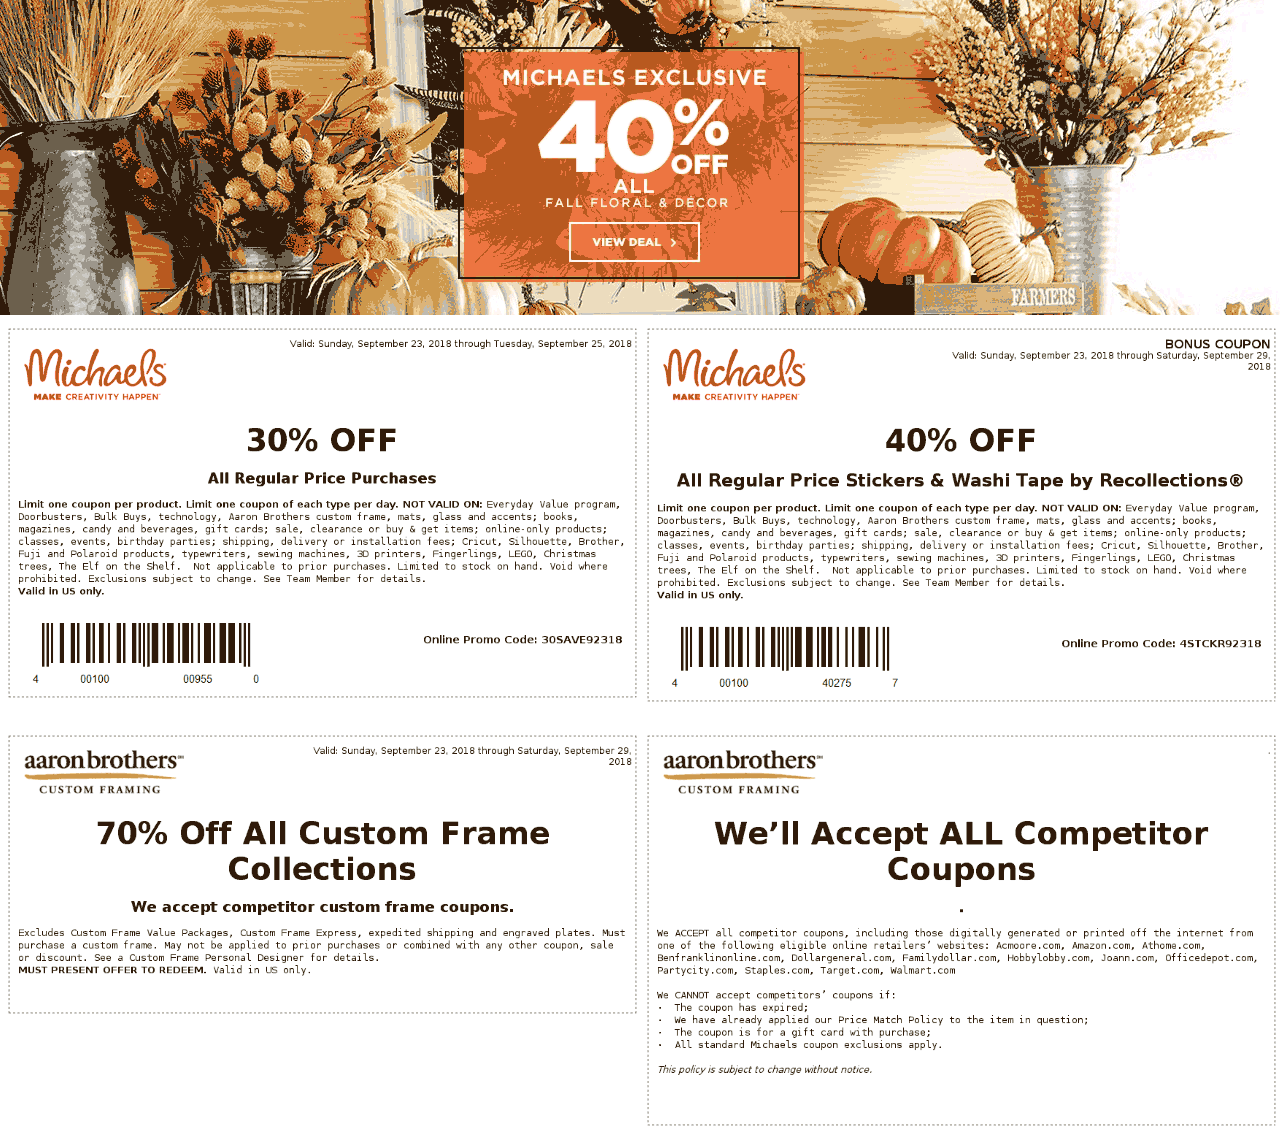 Michaels.com Promo Coupon 30% off at Michaels, or online via promo code 30SAVE92318